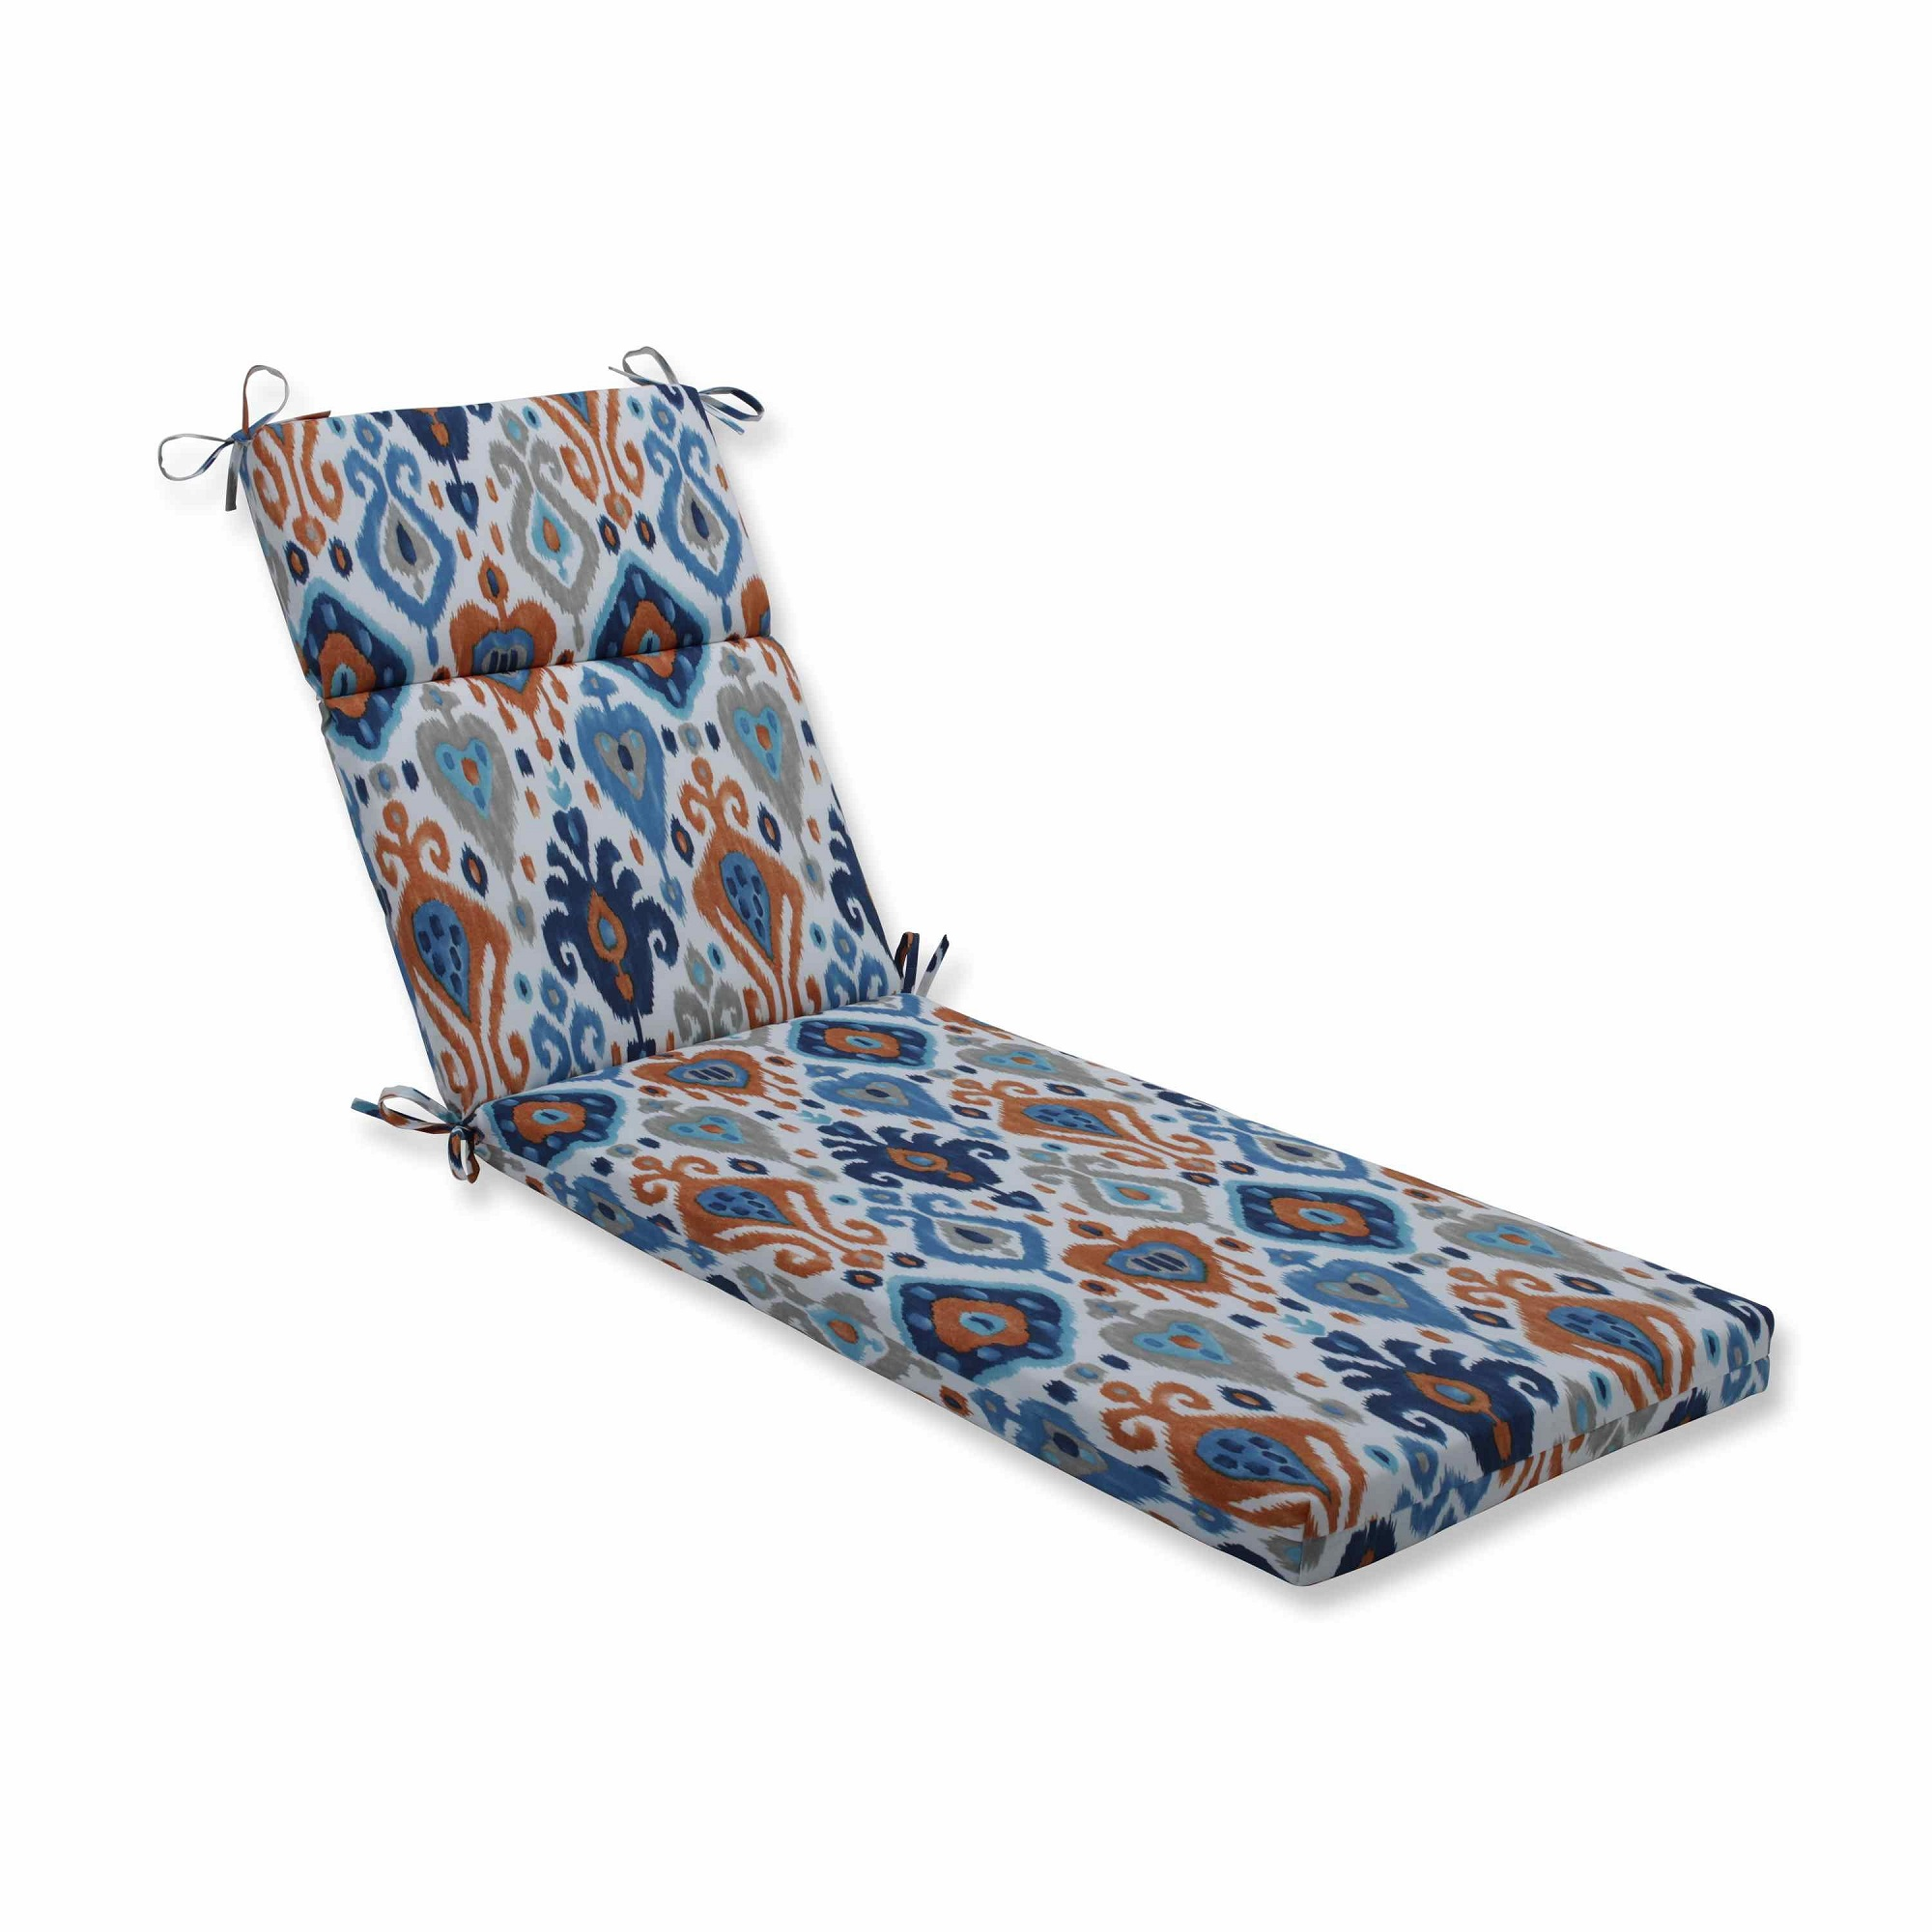 Vibrantly Colored Ikat Pattern Outdoor Patio Chaise Lounge Cushion 72.5